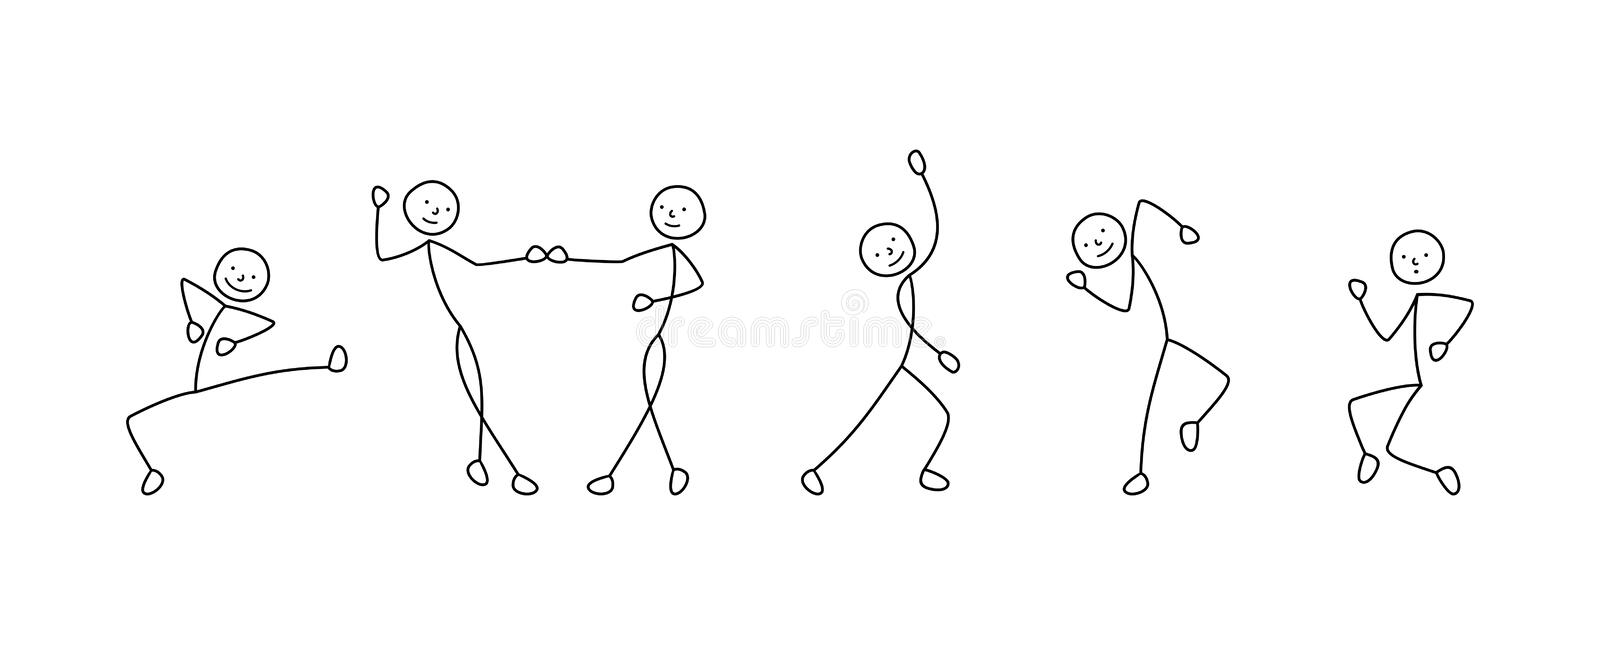 Dance illustration, stick figure man. Dancing, isolated drawings sketch happy royalty free illustration